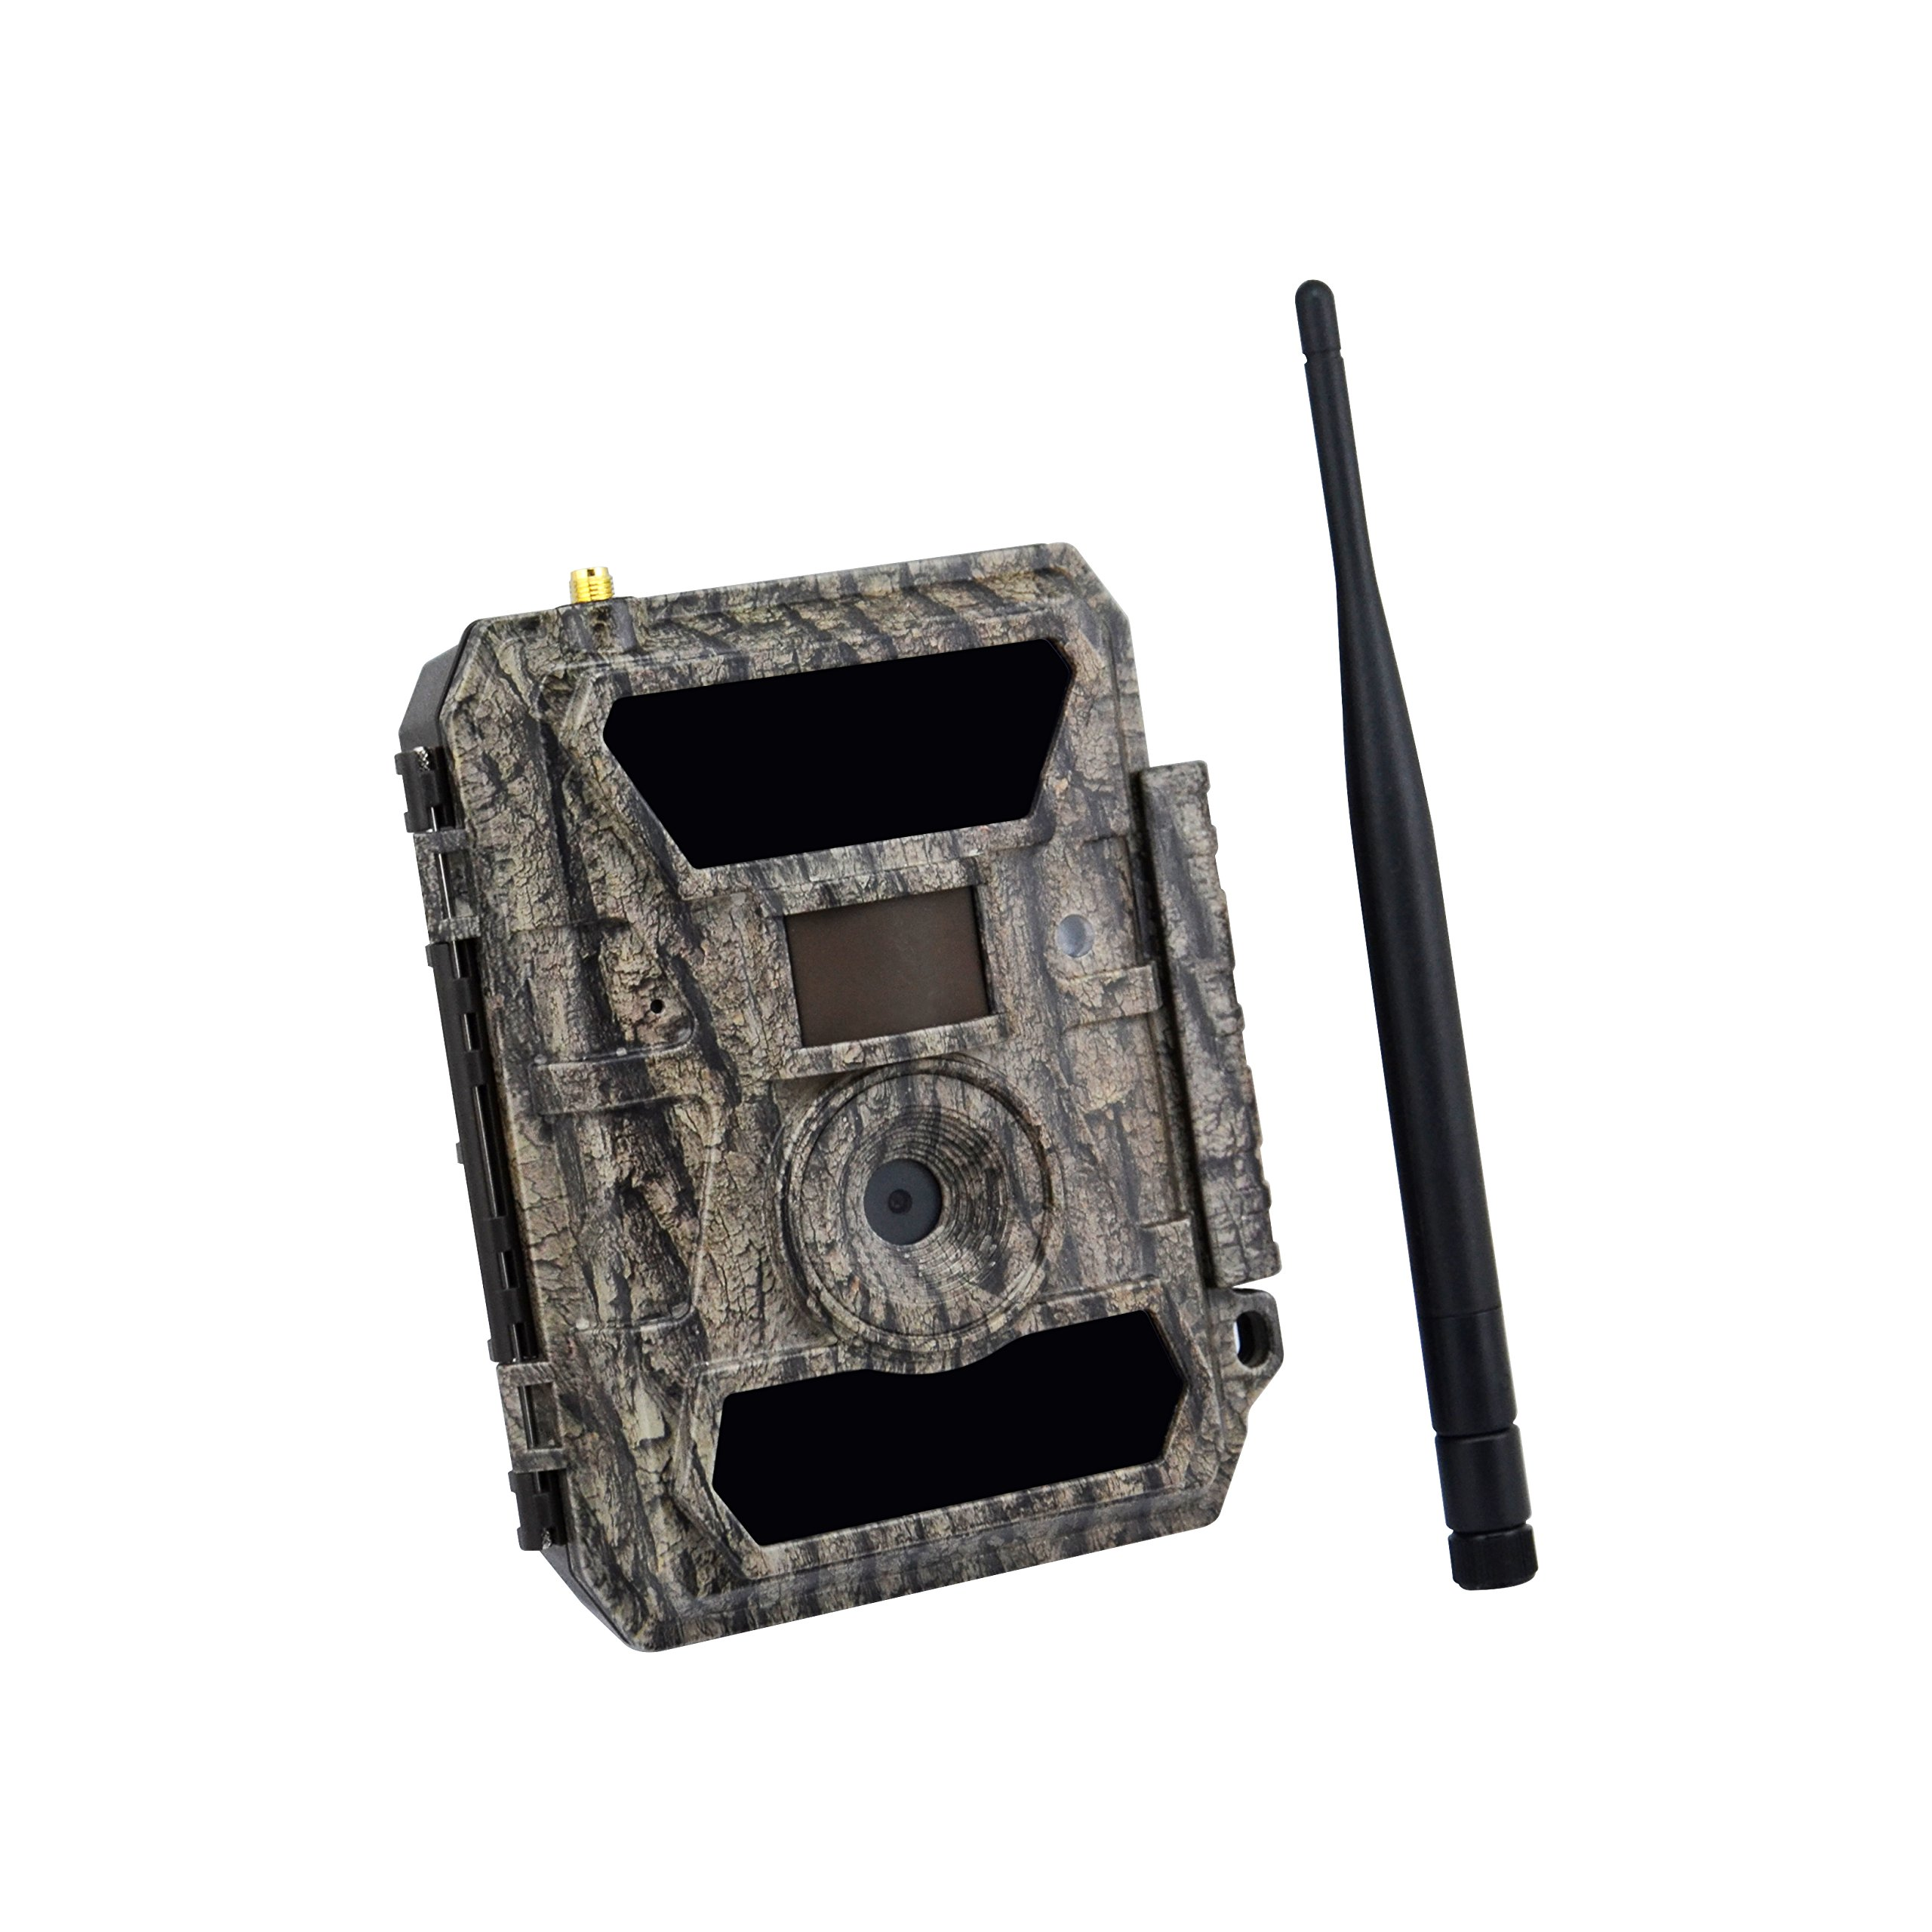 The General 3G Game Camera by Snyper Hunting Products (12MP, Viewing LCD, Connected by AT&T) by Snyper Hunting Products (Image #2)